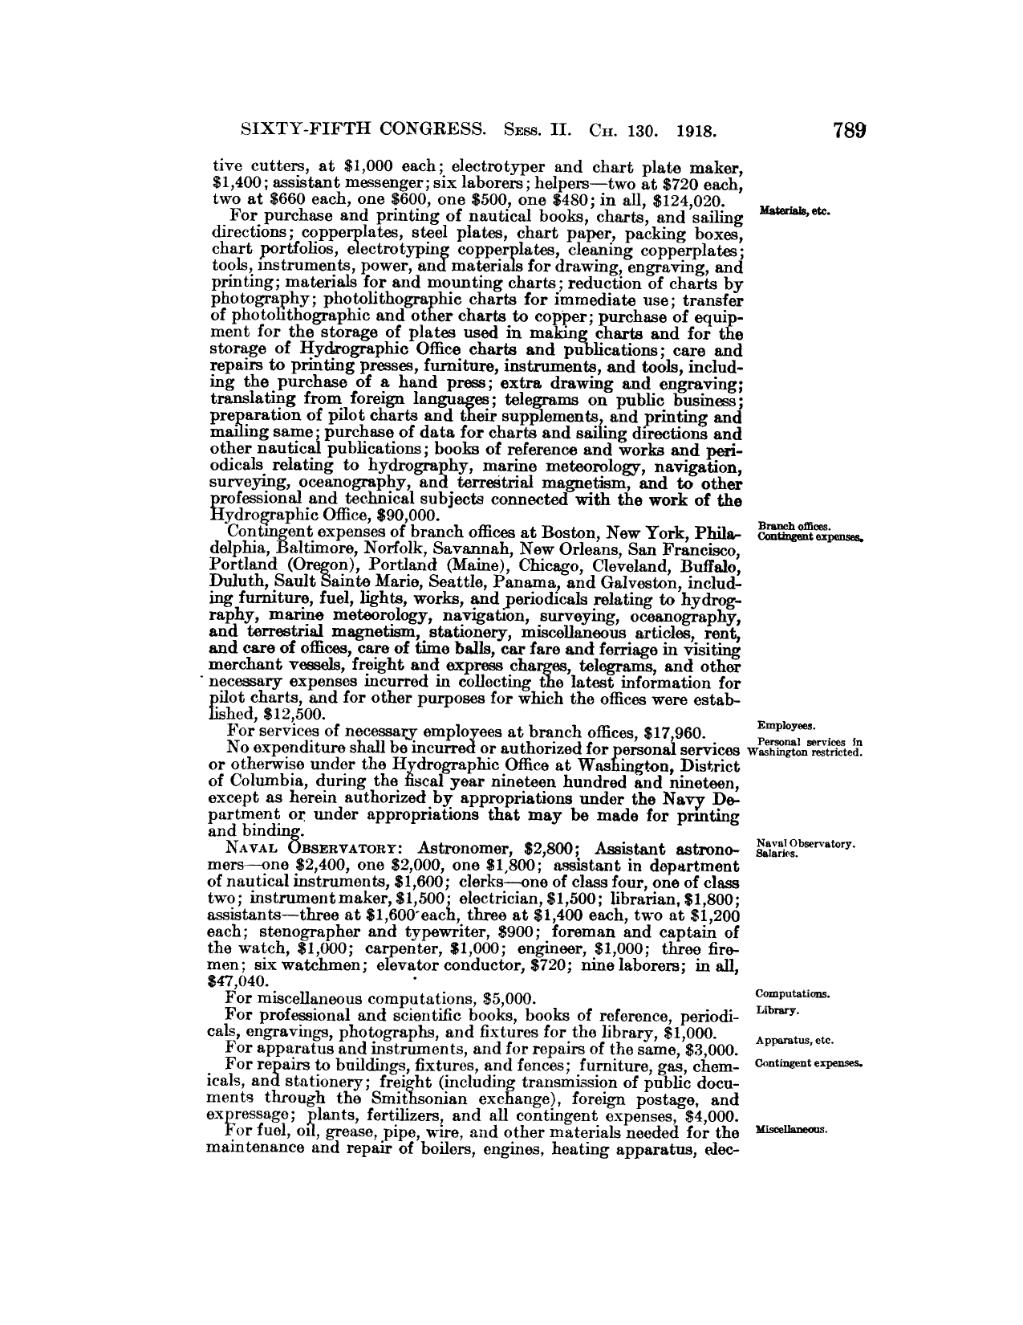 Pageunited States Statutes At Large Volume 40 Part 1djvu 807 Marine Wiring Books Or Fuel 01 Grease Pipe Wire And Other Materials Needed For The S Maintenance Repair Of Boilers Engines Heating Apparatus Elec